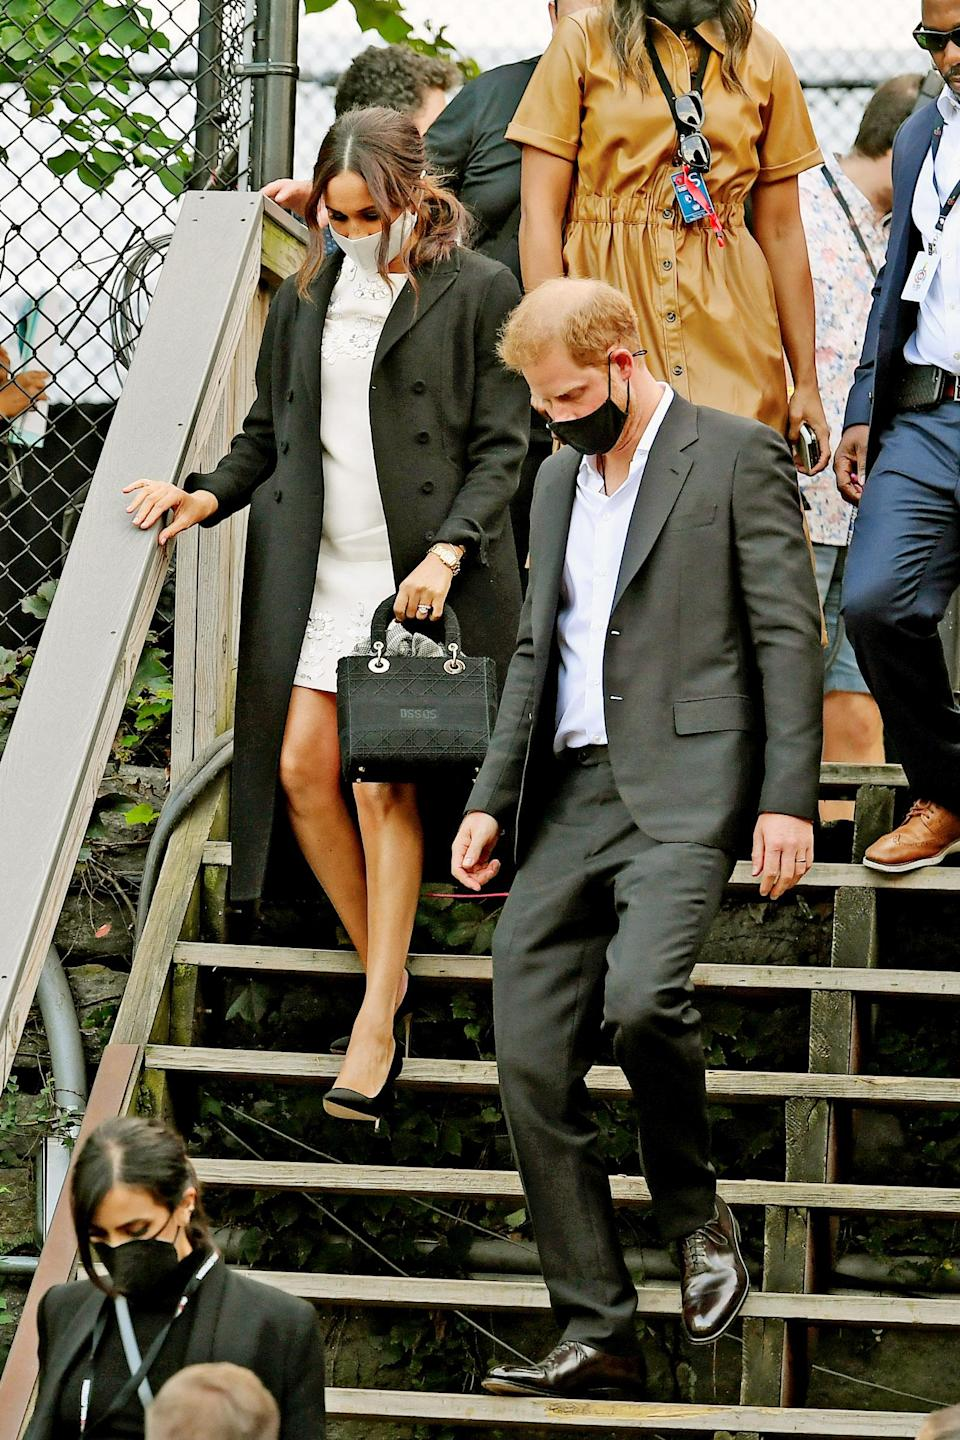 Prince Harry and Meghan Markle leave Global Citizen Live at New York City's Central Park. - Credit: MEGA